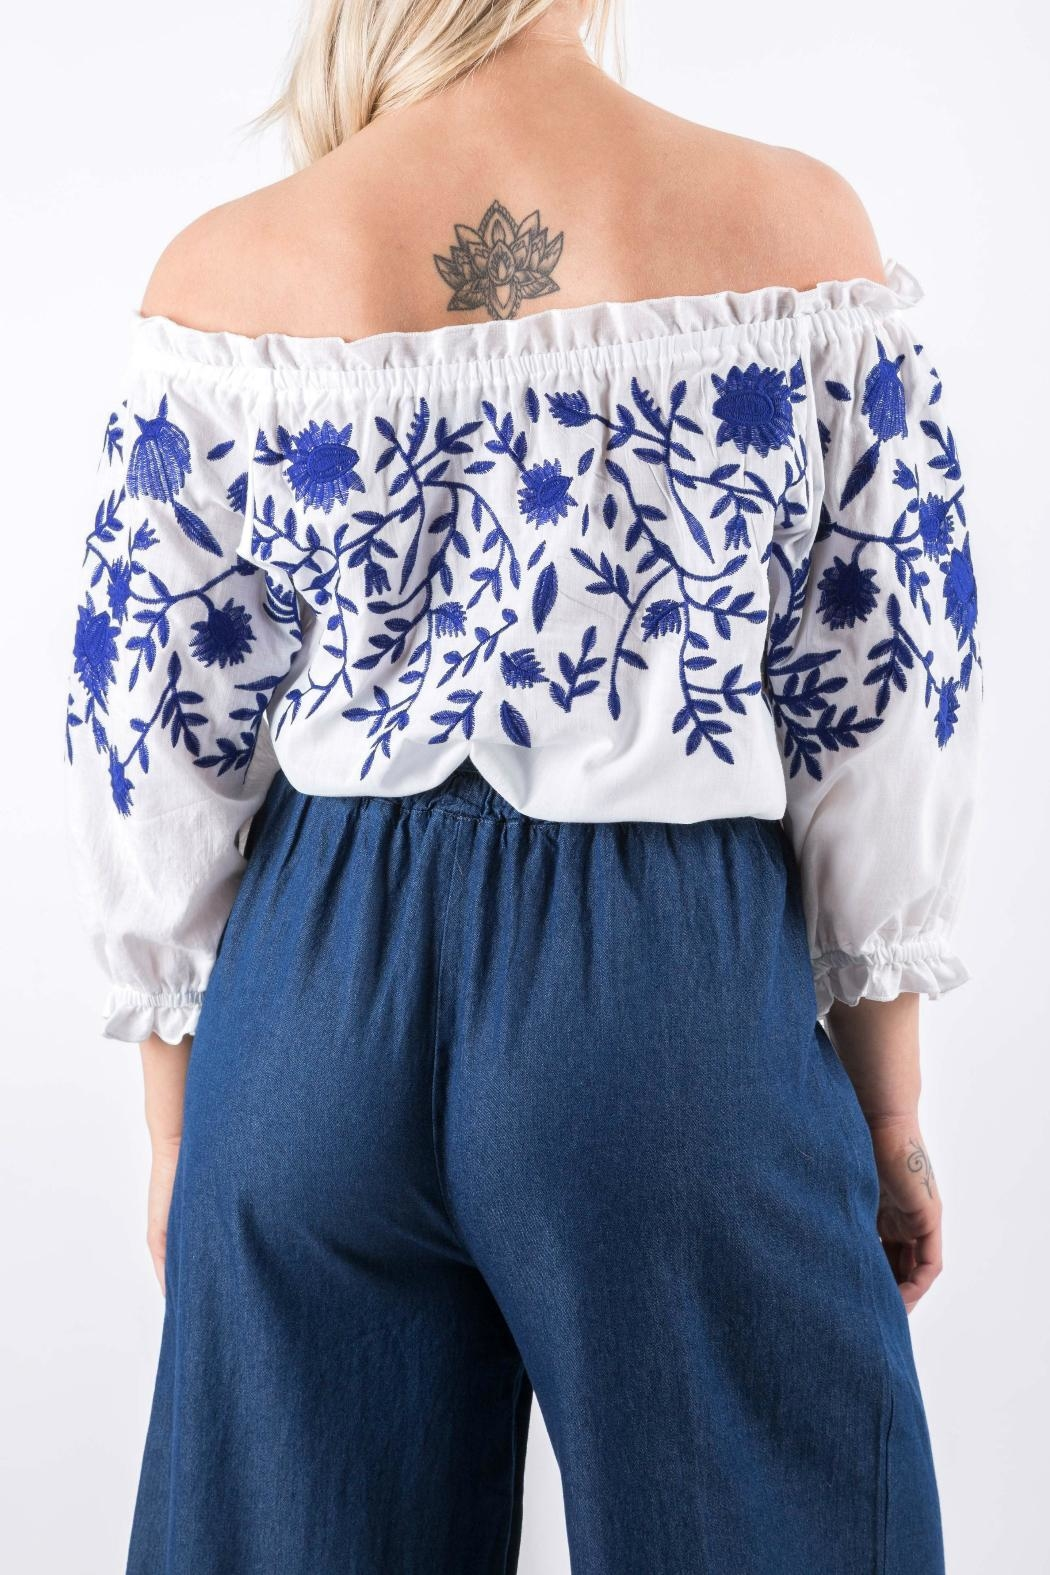 Yuki Tokyo Evelyn Embroidered Top - Side Cropped Image